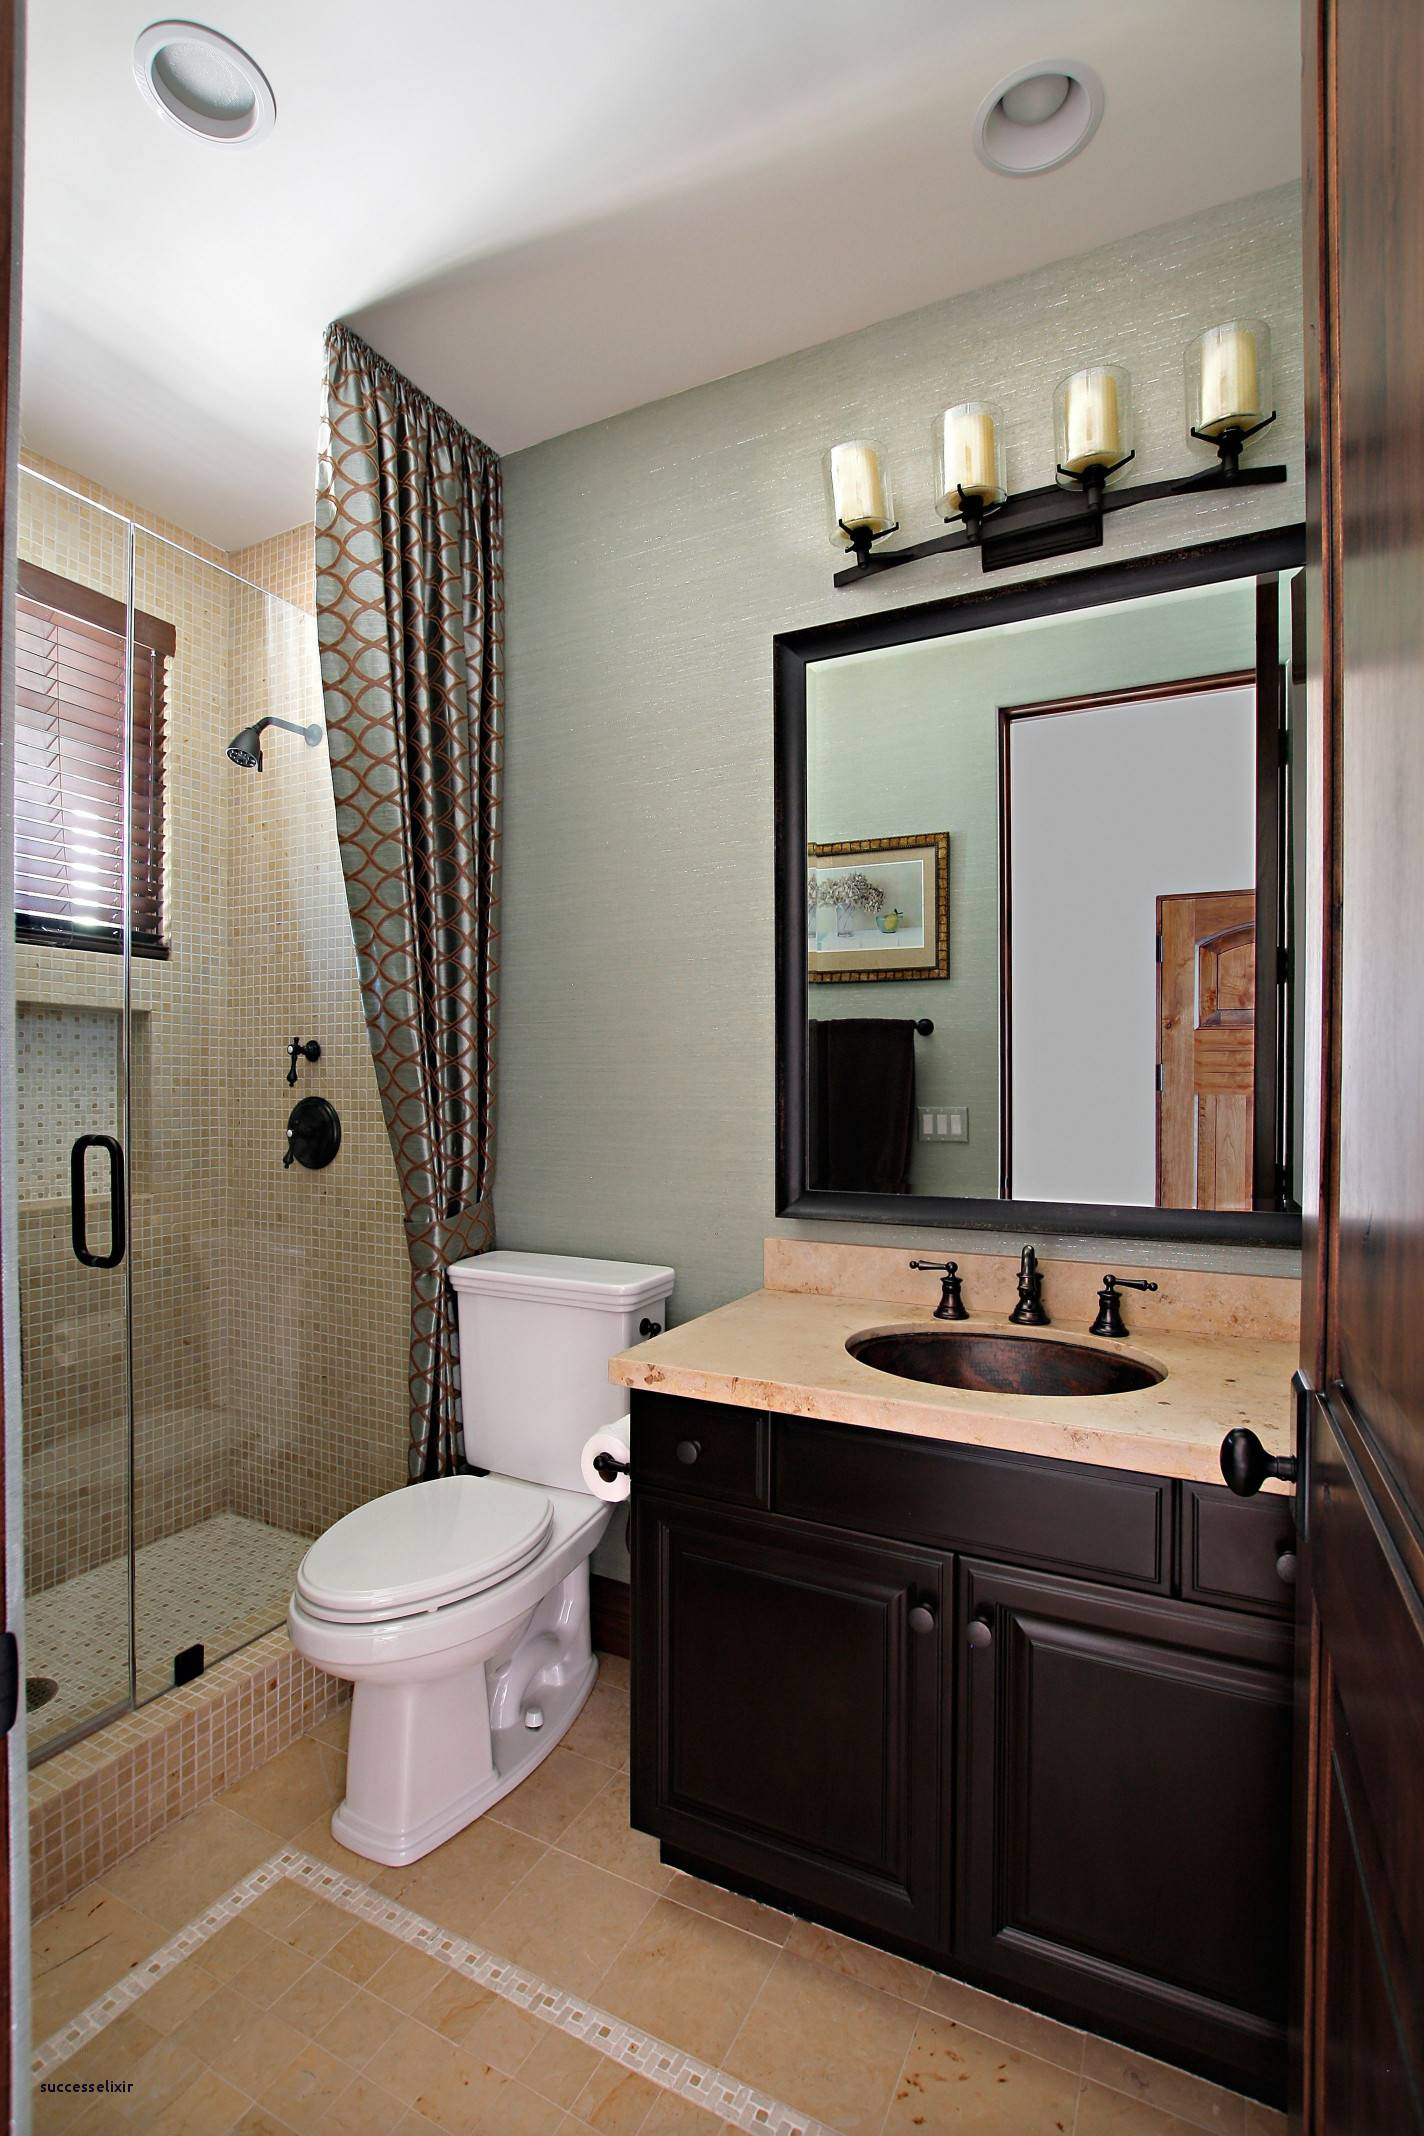 small bathroom ideas with shower fantastic tub shower ideas for small bathrooms i pinimg originals 8e 04 0d of small bathroom ideas with shower